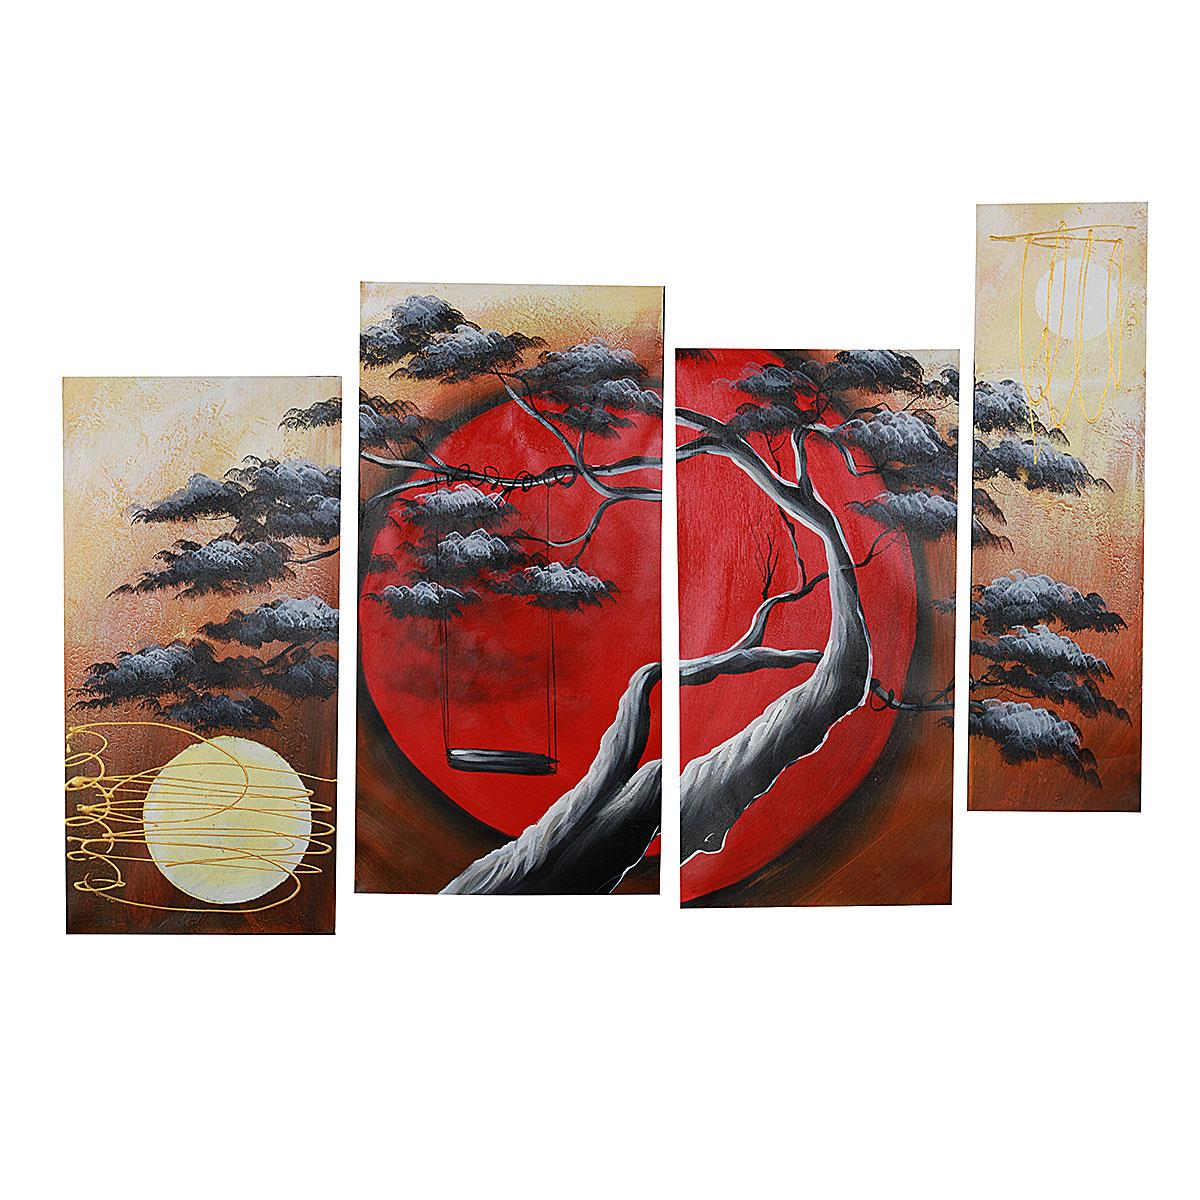 4pcs/set Abstract Red Africa Pine Tree Sun Oil Painting Hand Painted Art Set Modern Wall Stickers For Home Decor No Frames(China (Mainland))